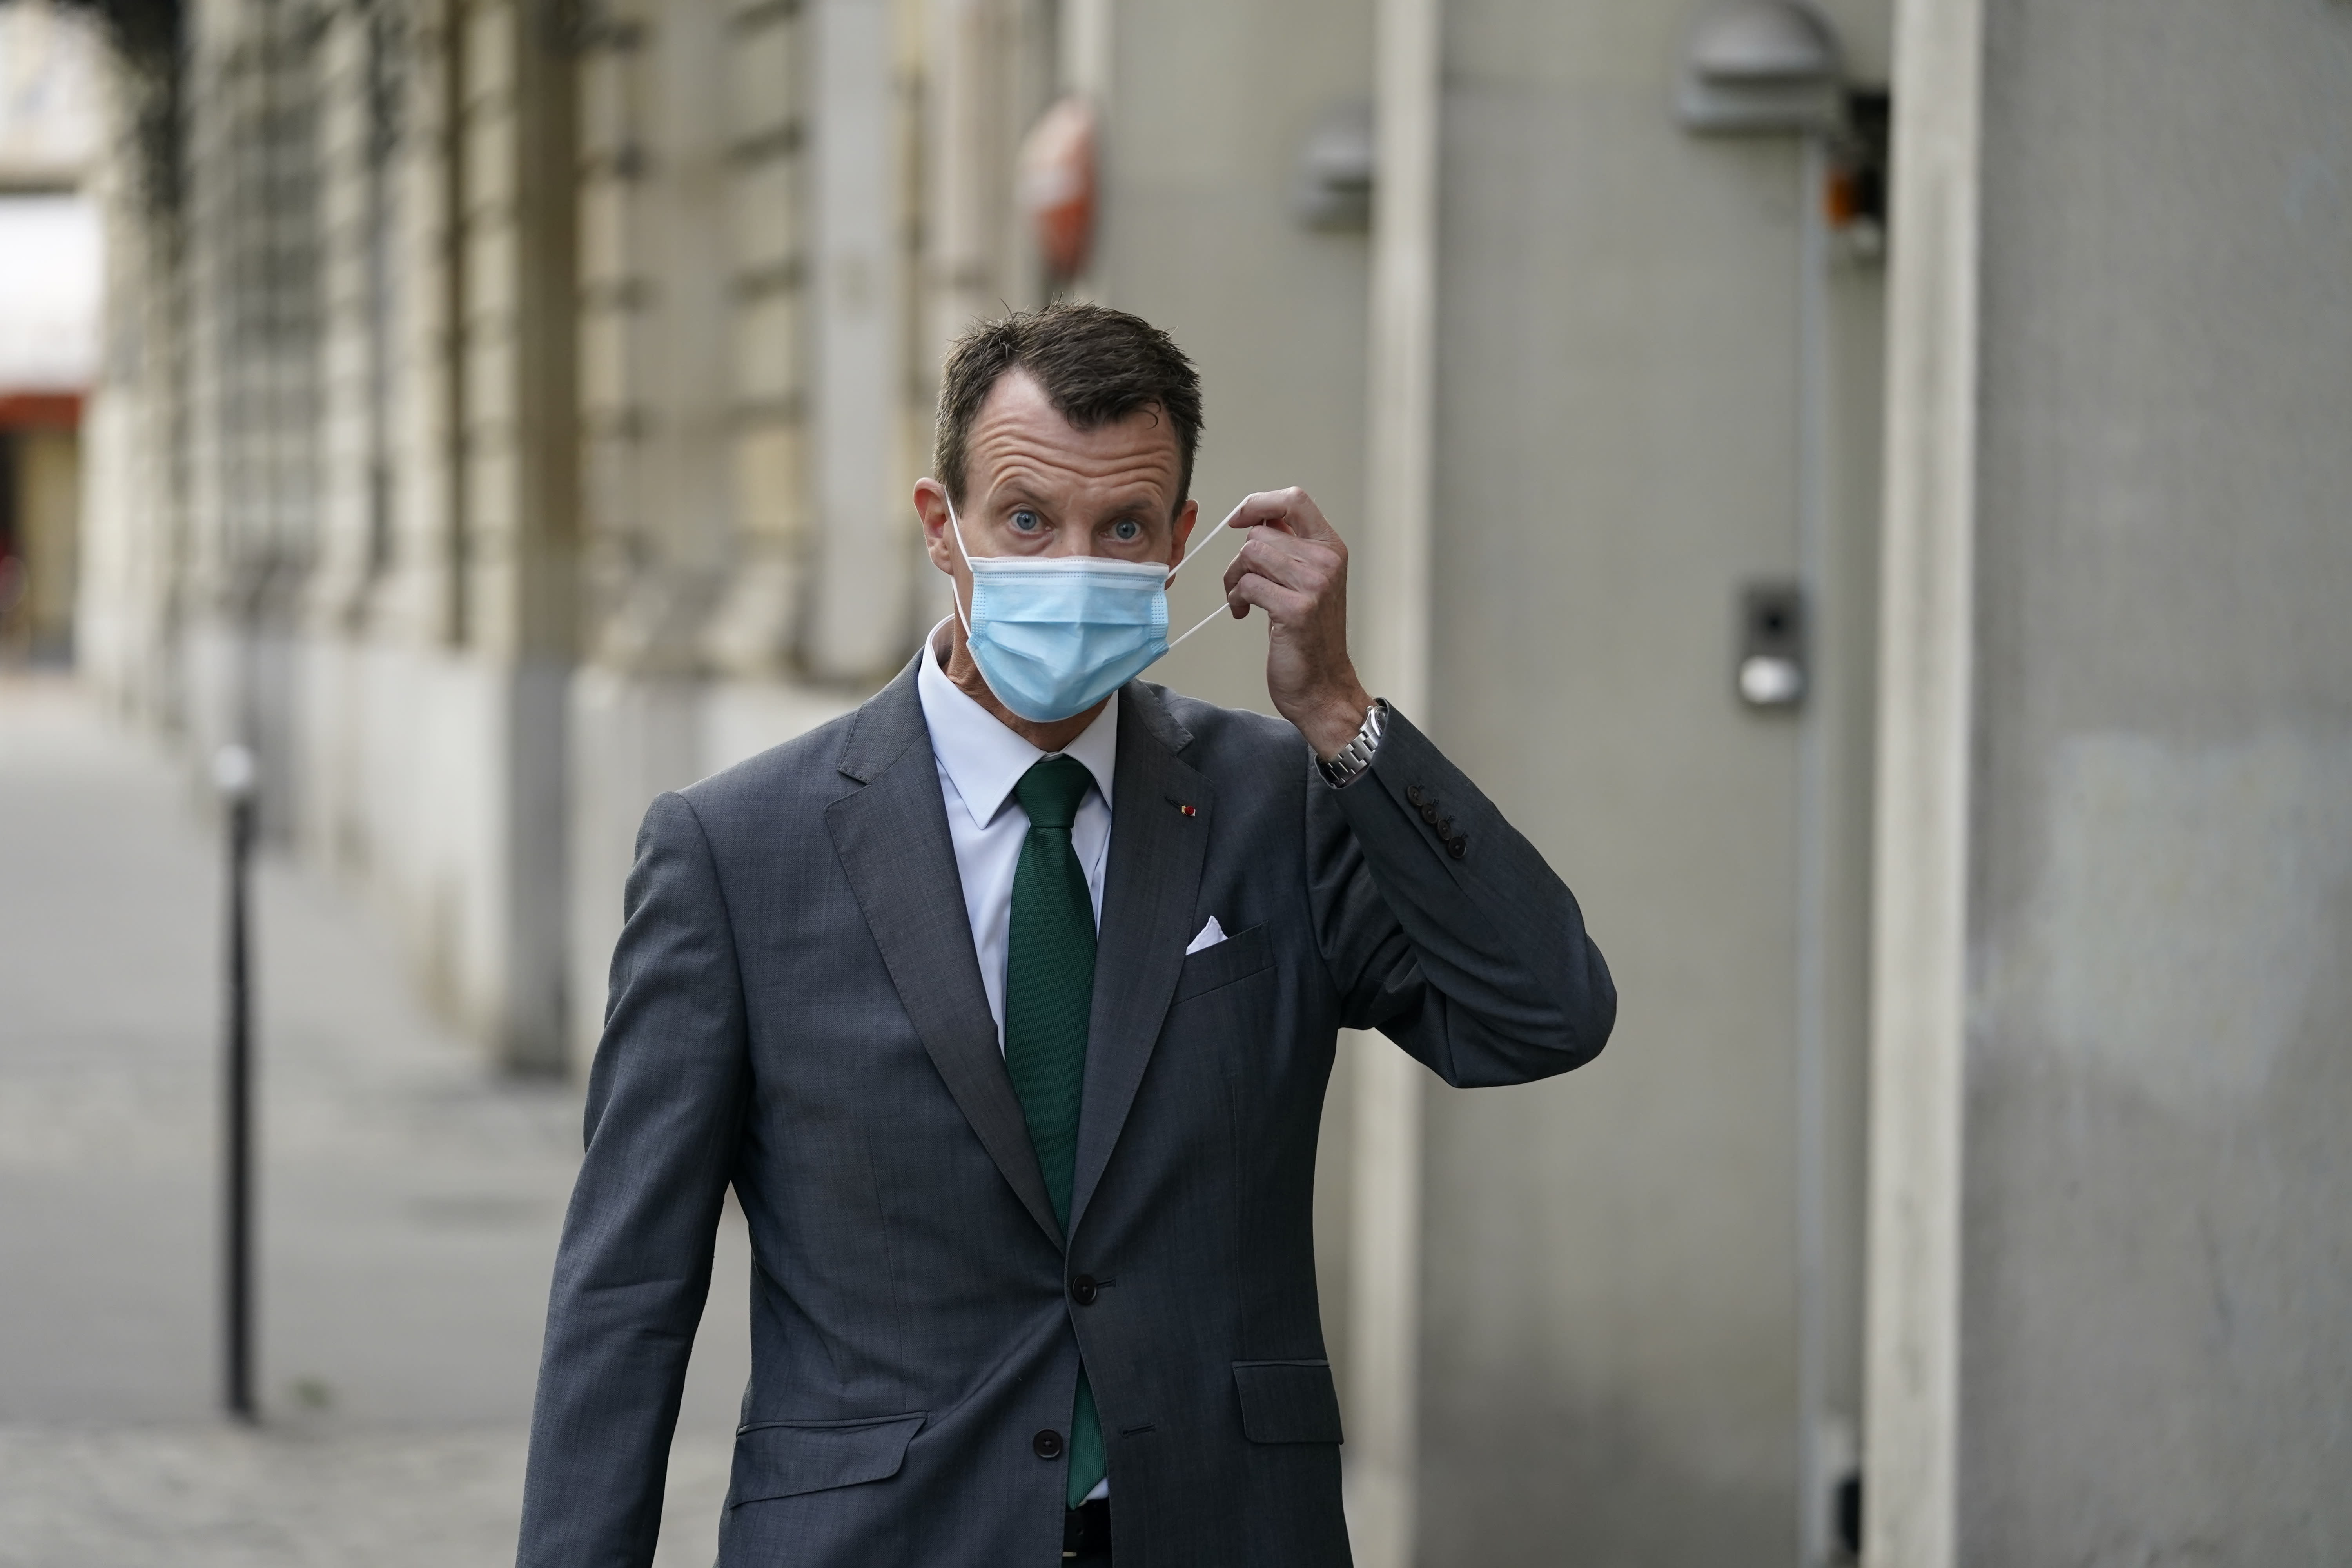 """Denmark's Prince Joachim adjusts his face mask as he walks to work, at the Danish Embassy in Paris, France, Friday, Sept. 18 2020. Prince Joachim, the younger son of Queen Margrethe of Denmark, who underwent an emergency surgery in France in July for a blood clot in his brain, says he is """"eager to get started"""" as he arrived for his first work day at the Danish Embassy in Paris. The 51-year-old prince spoke to reporters outside the Danish mission where he will be defense attache. Joachim was rushed to the Toulouse University Hospital on July 24. (Mads Claus Rasmussen/ Ritzau Scanpix via AP)"""